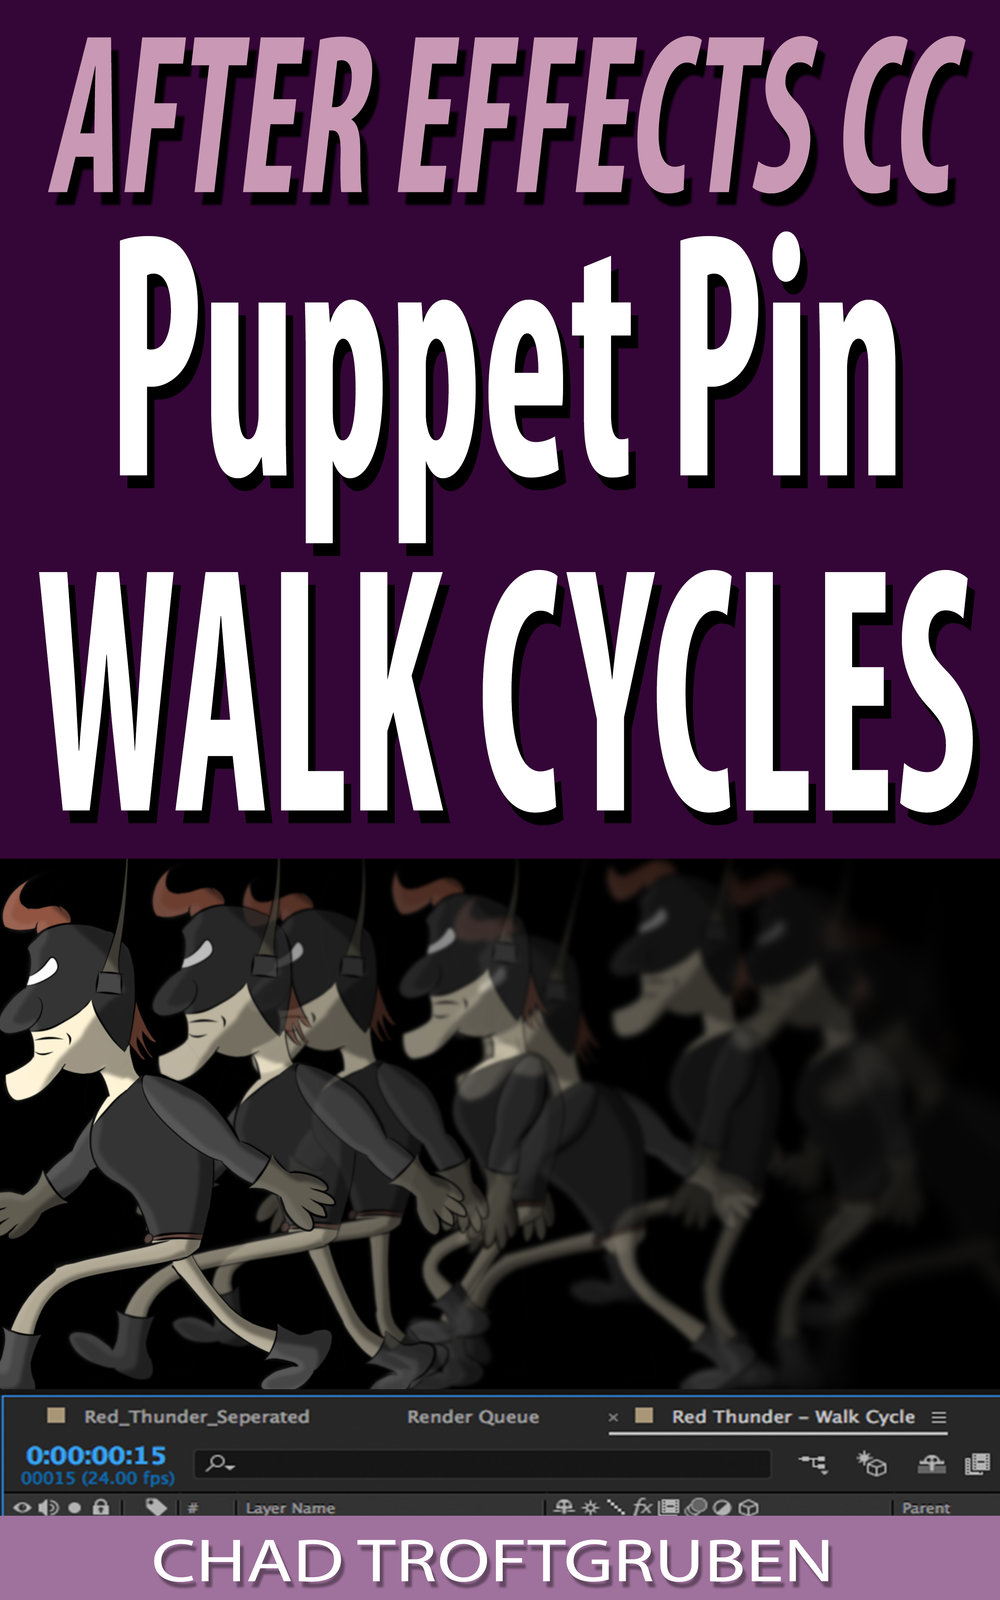 After Effects CC Puppet Pin Walk Cycles Cover